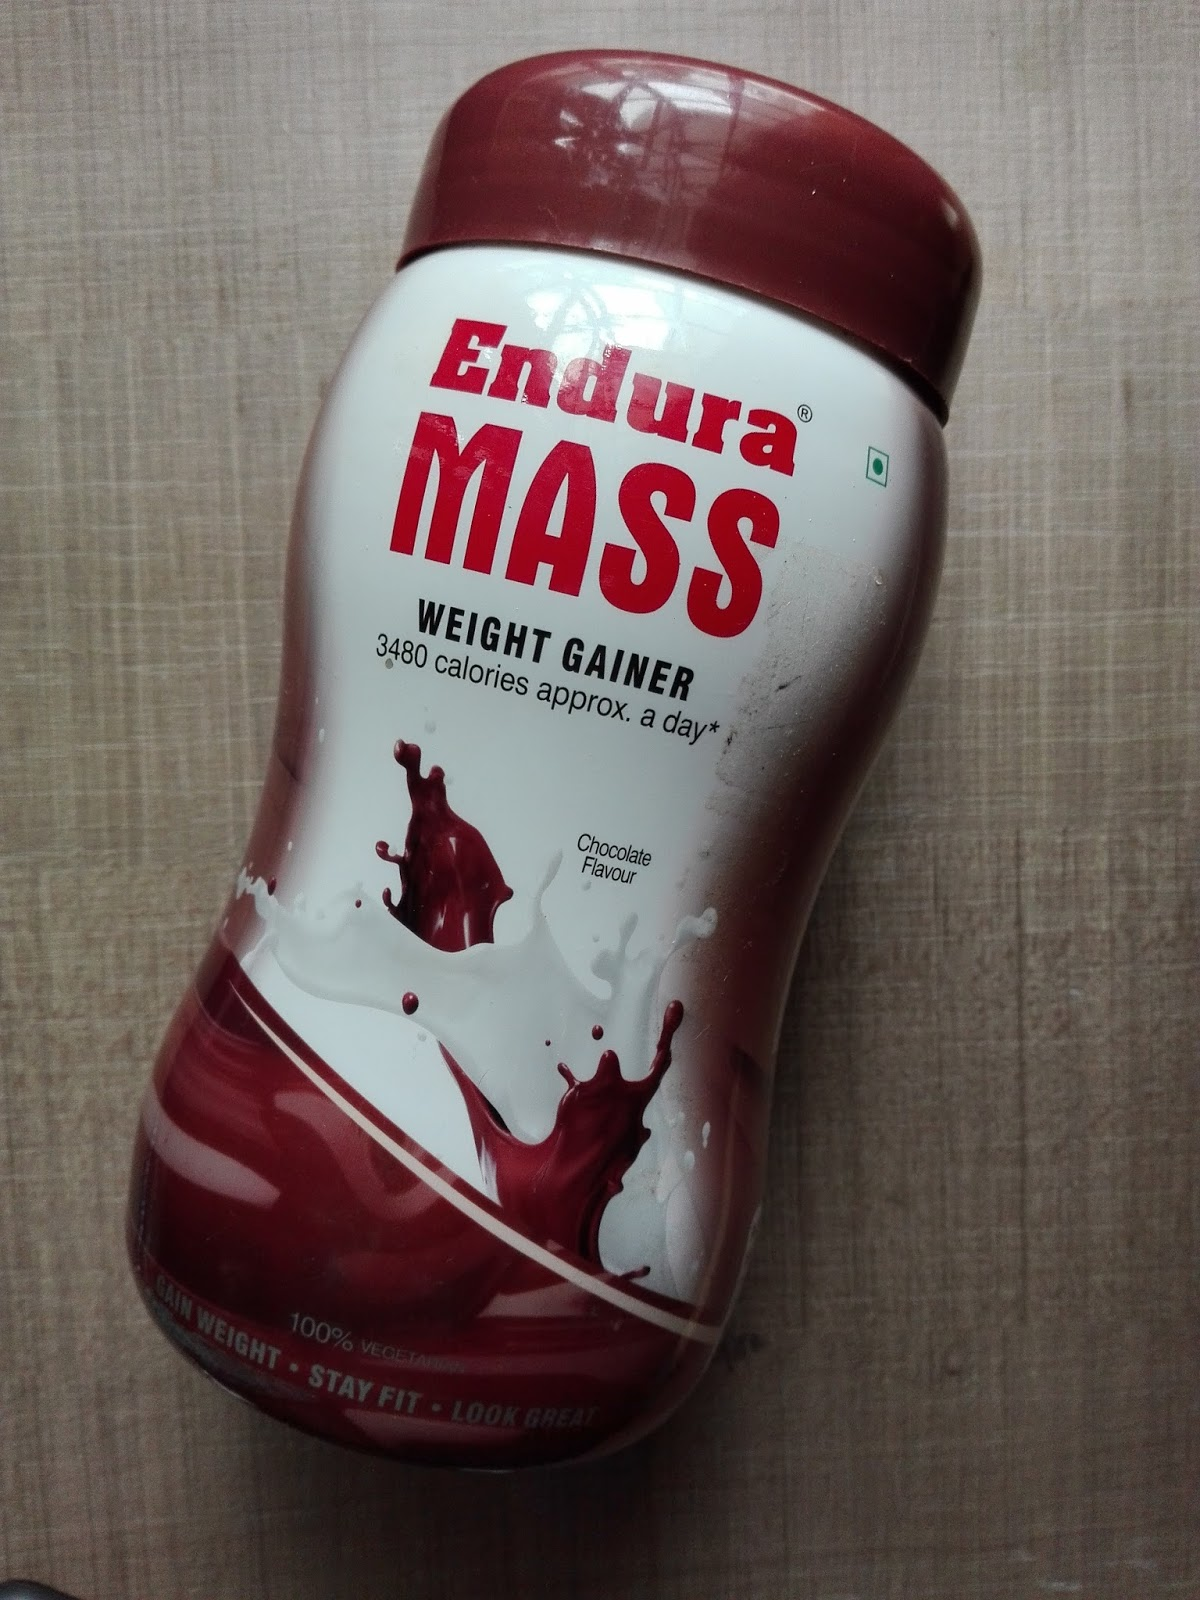 Endura mass weight gainer review